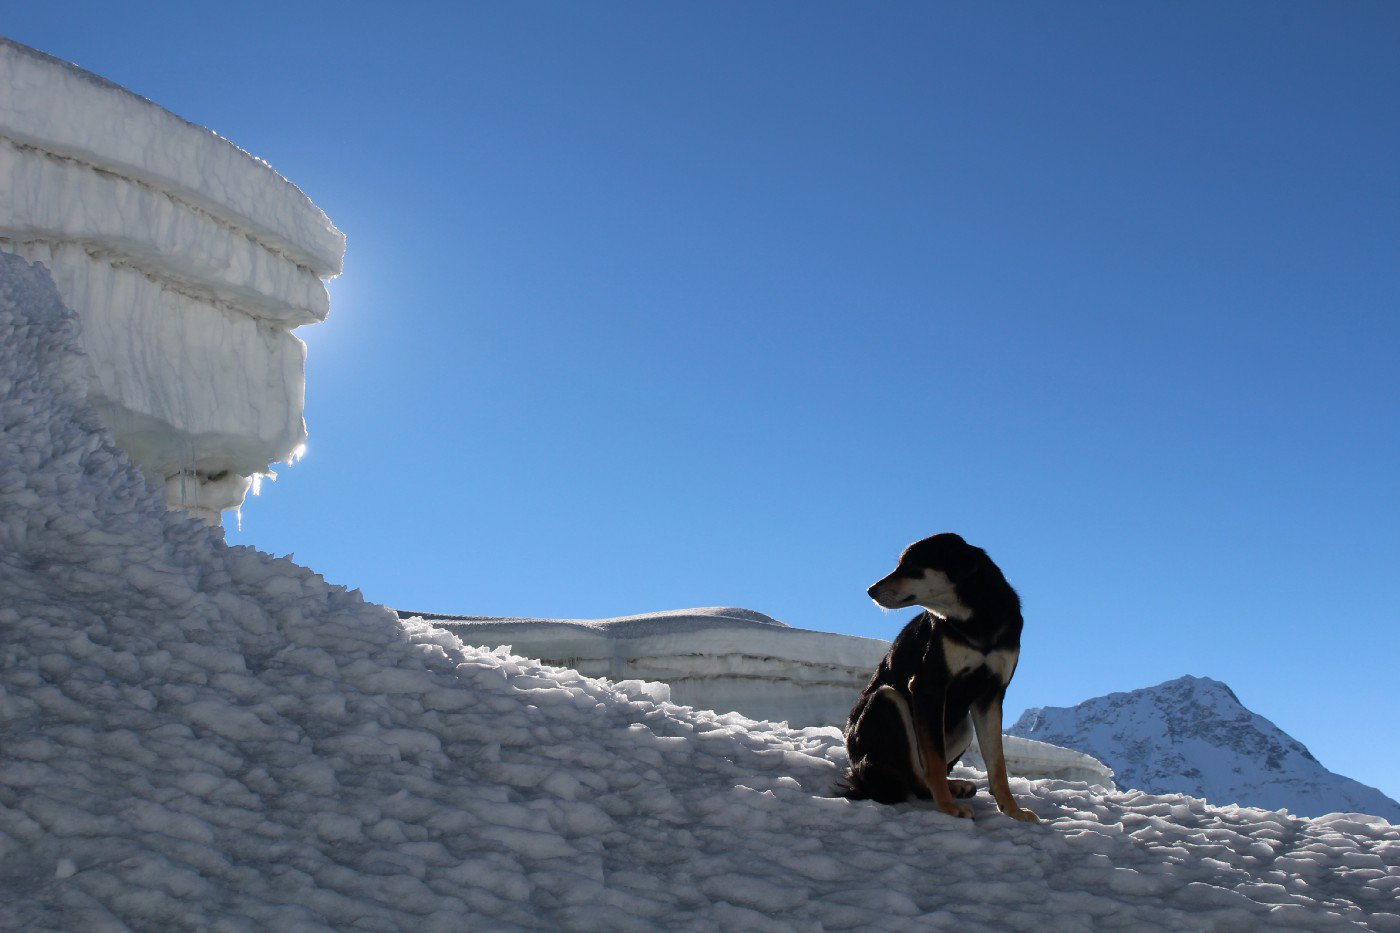 Stray dog scales 24,000 Himalayan mountain Provider: Don Wargowsky Source: https://blog.usejournal.com/stray-dog-climbs-23-000-mountain-89c5ddd57285